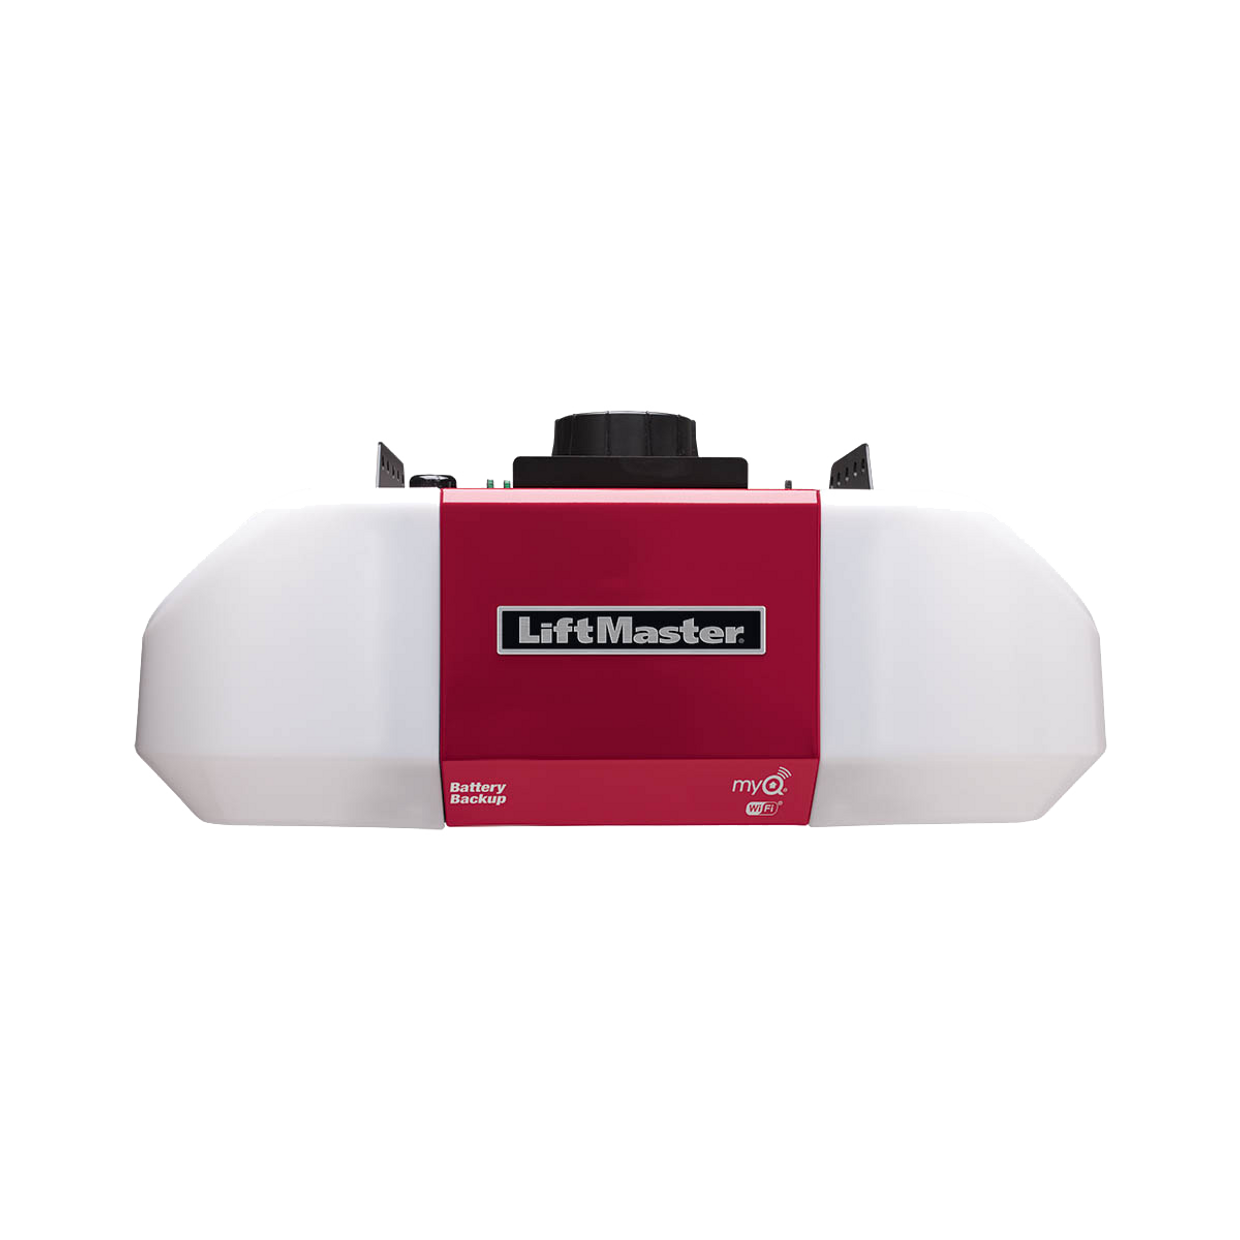 Elite Series 8550w Wifi Garage Door Opener Liftmaster